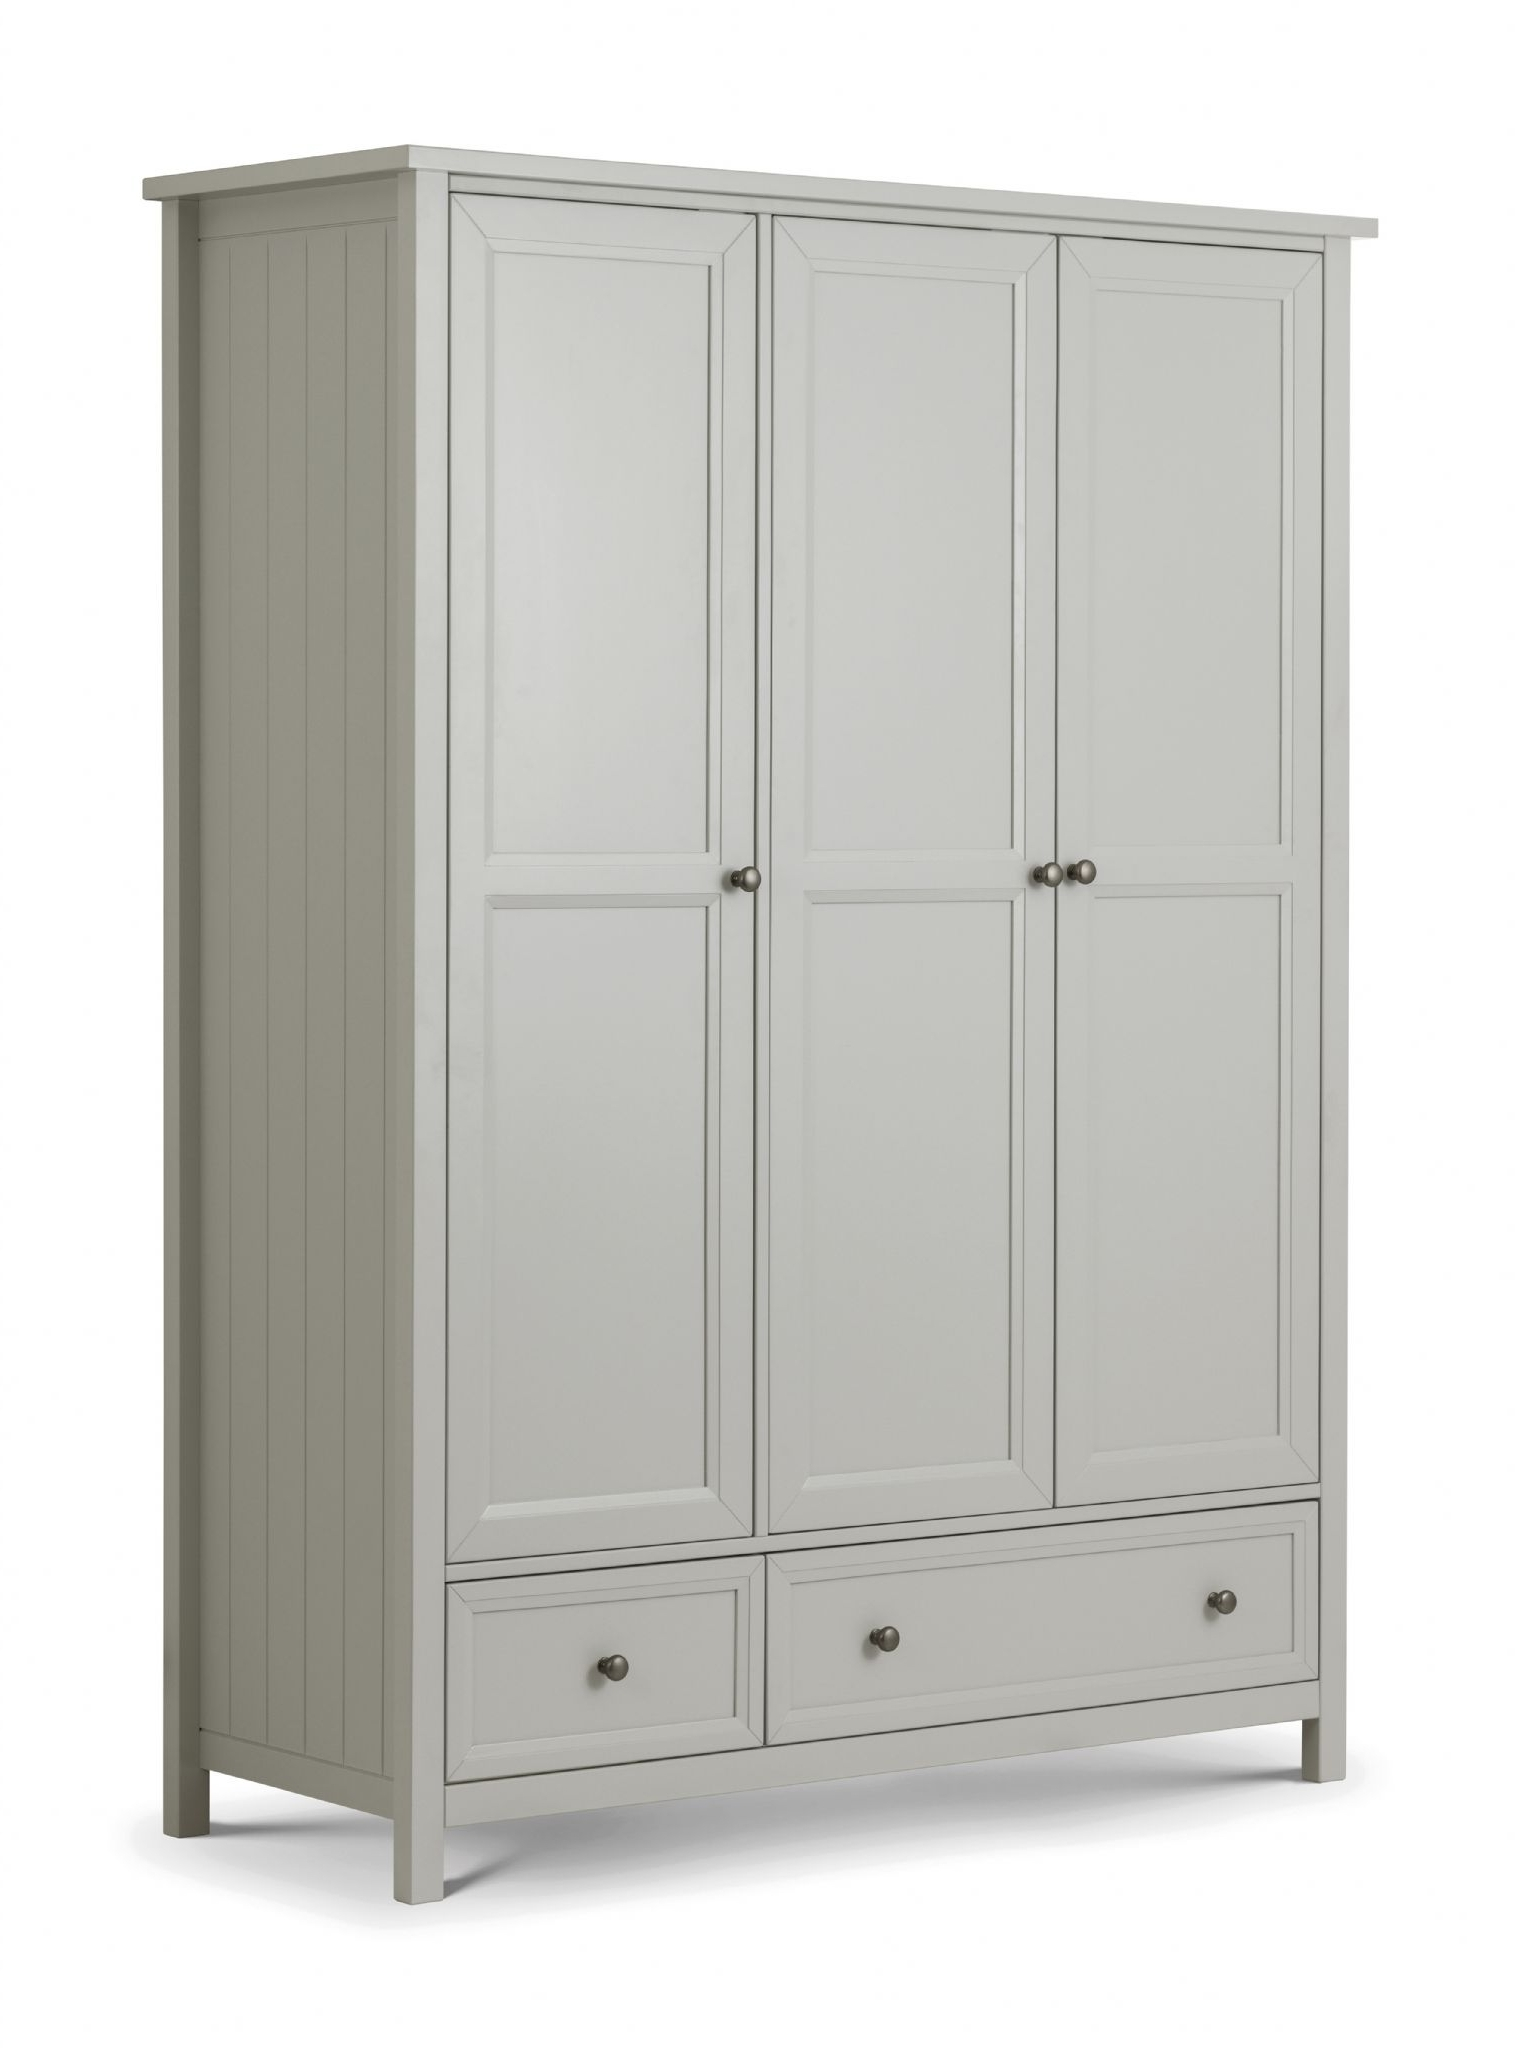 3 Door Wardrobes Regarding Popular Legnano Dove Grey Lacquered Finish 3 Door Wardrobe Jb (View 15 of 15)